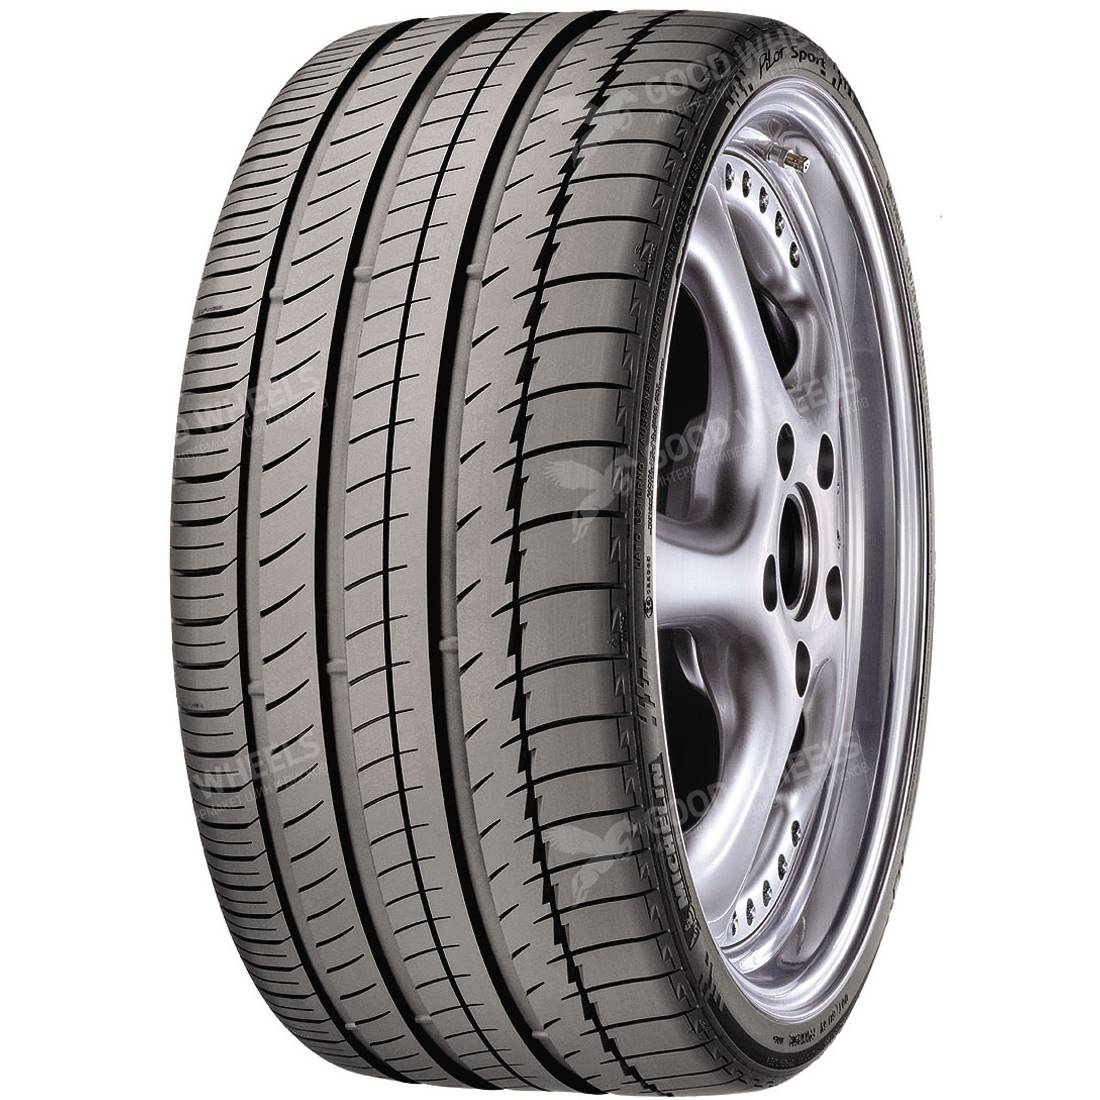 Michelin Pilot Sport 2 (PS2) 255/35 R19 96Y